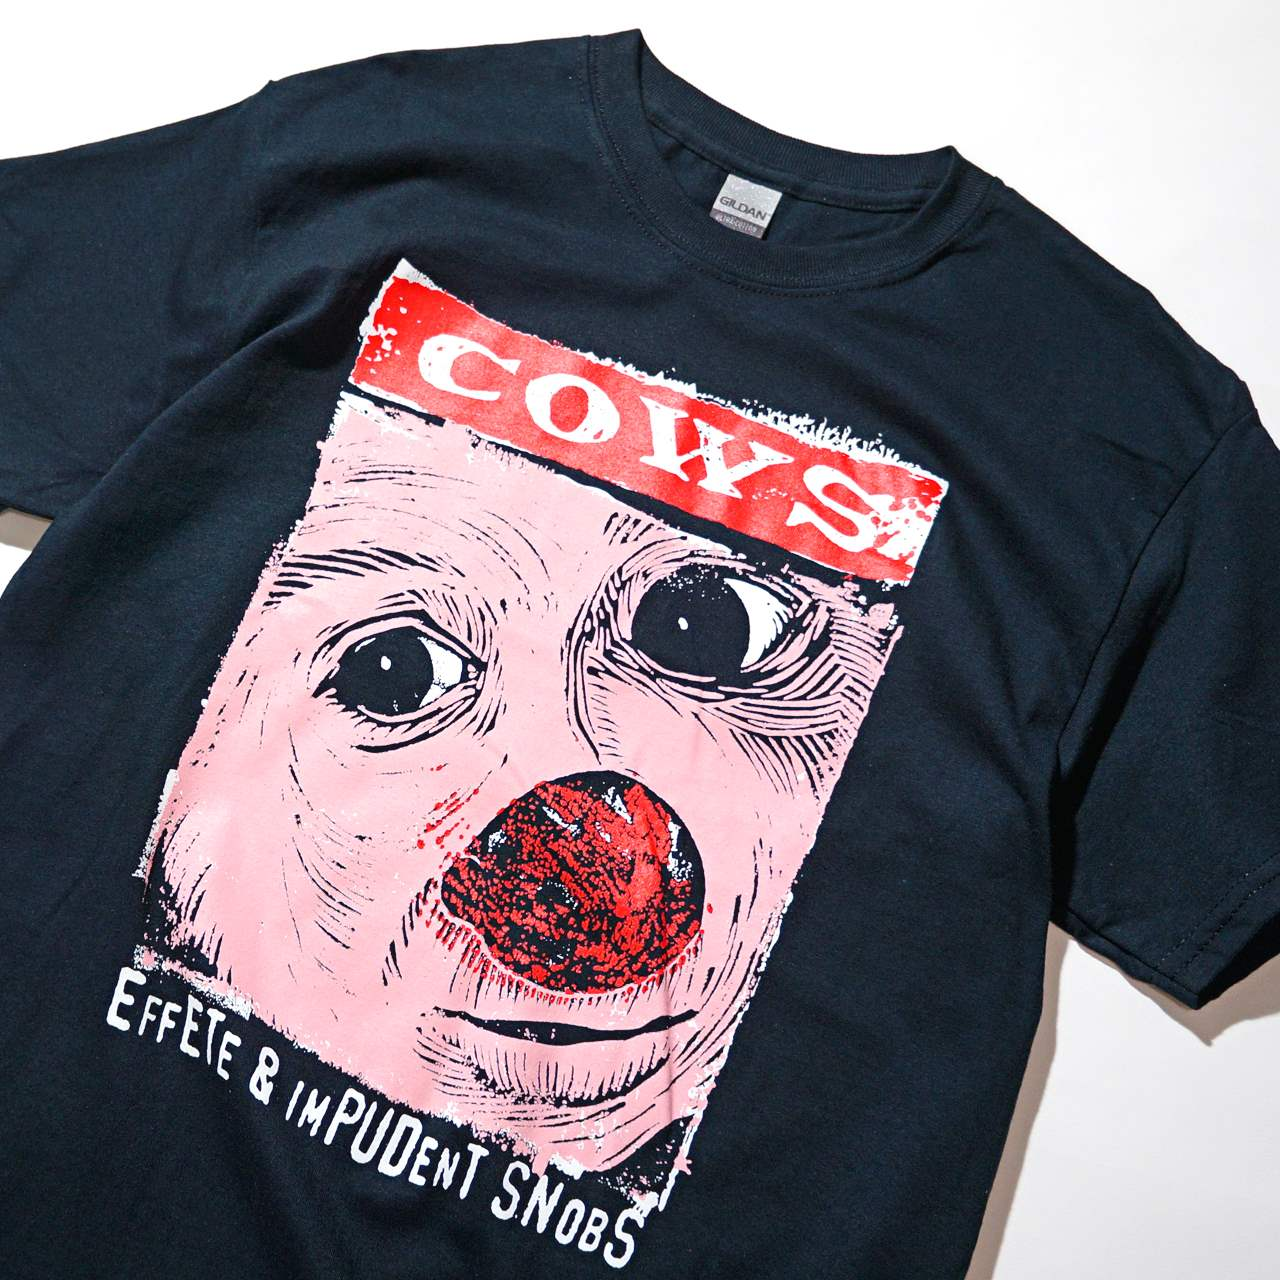 COWS バンドTシャツ Effete and Impudent Snobs